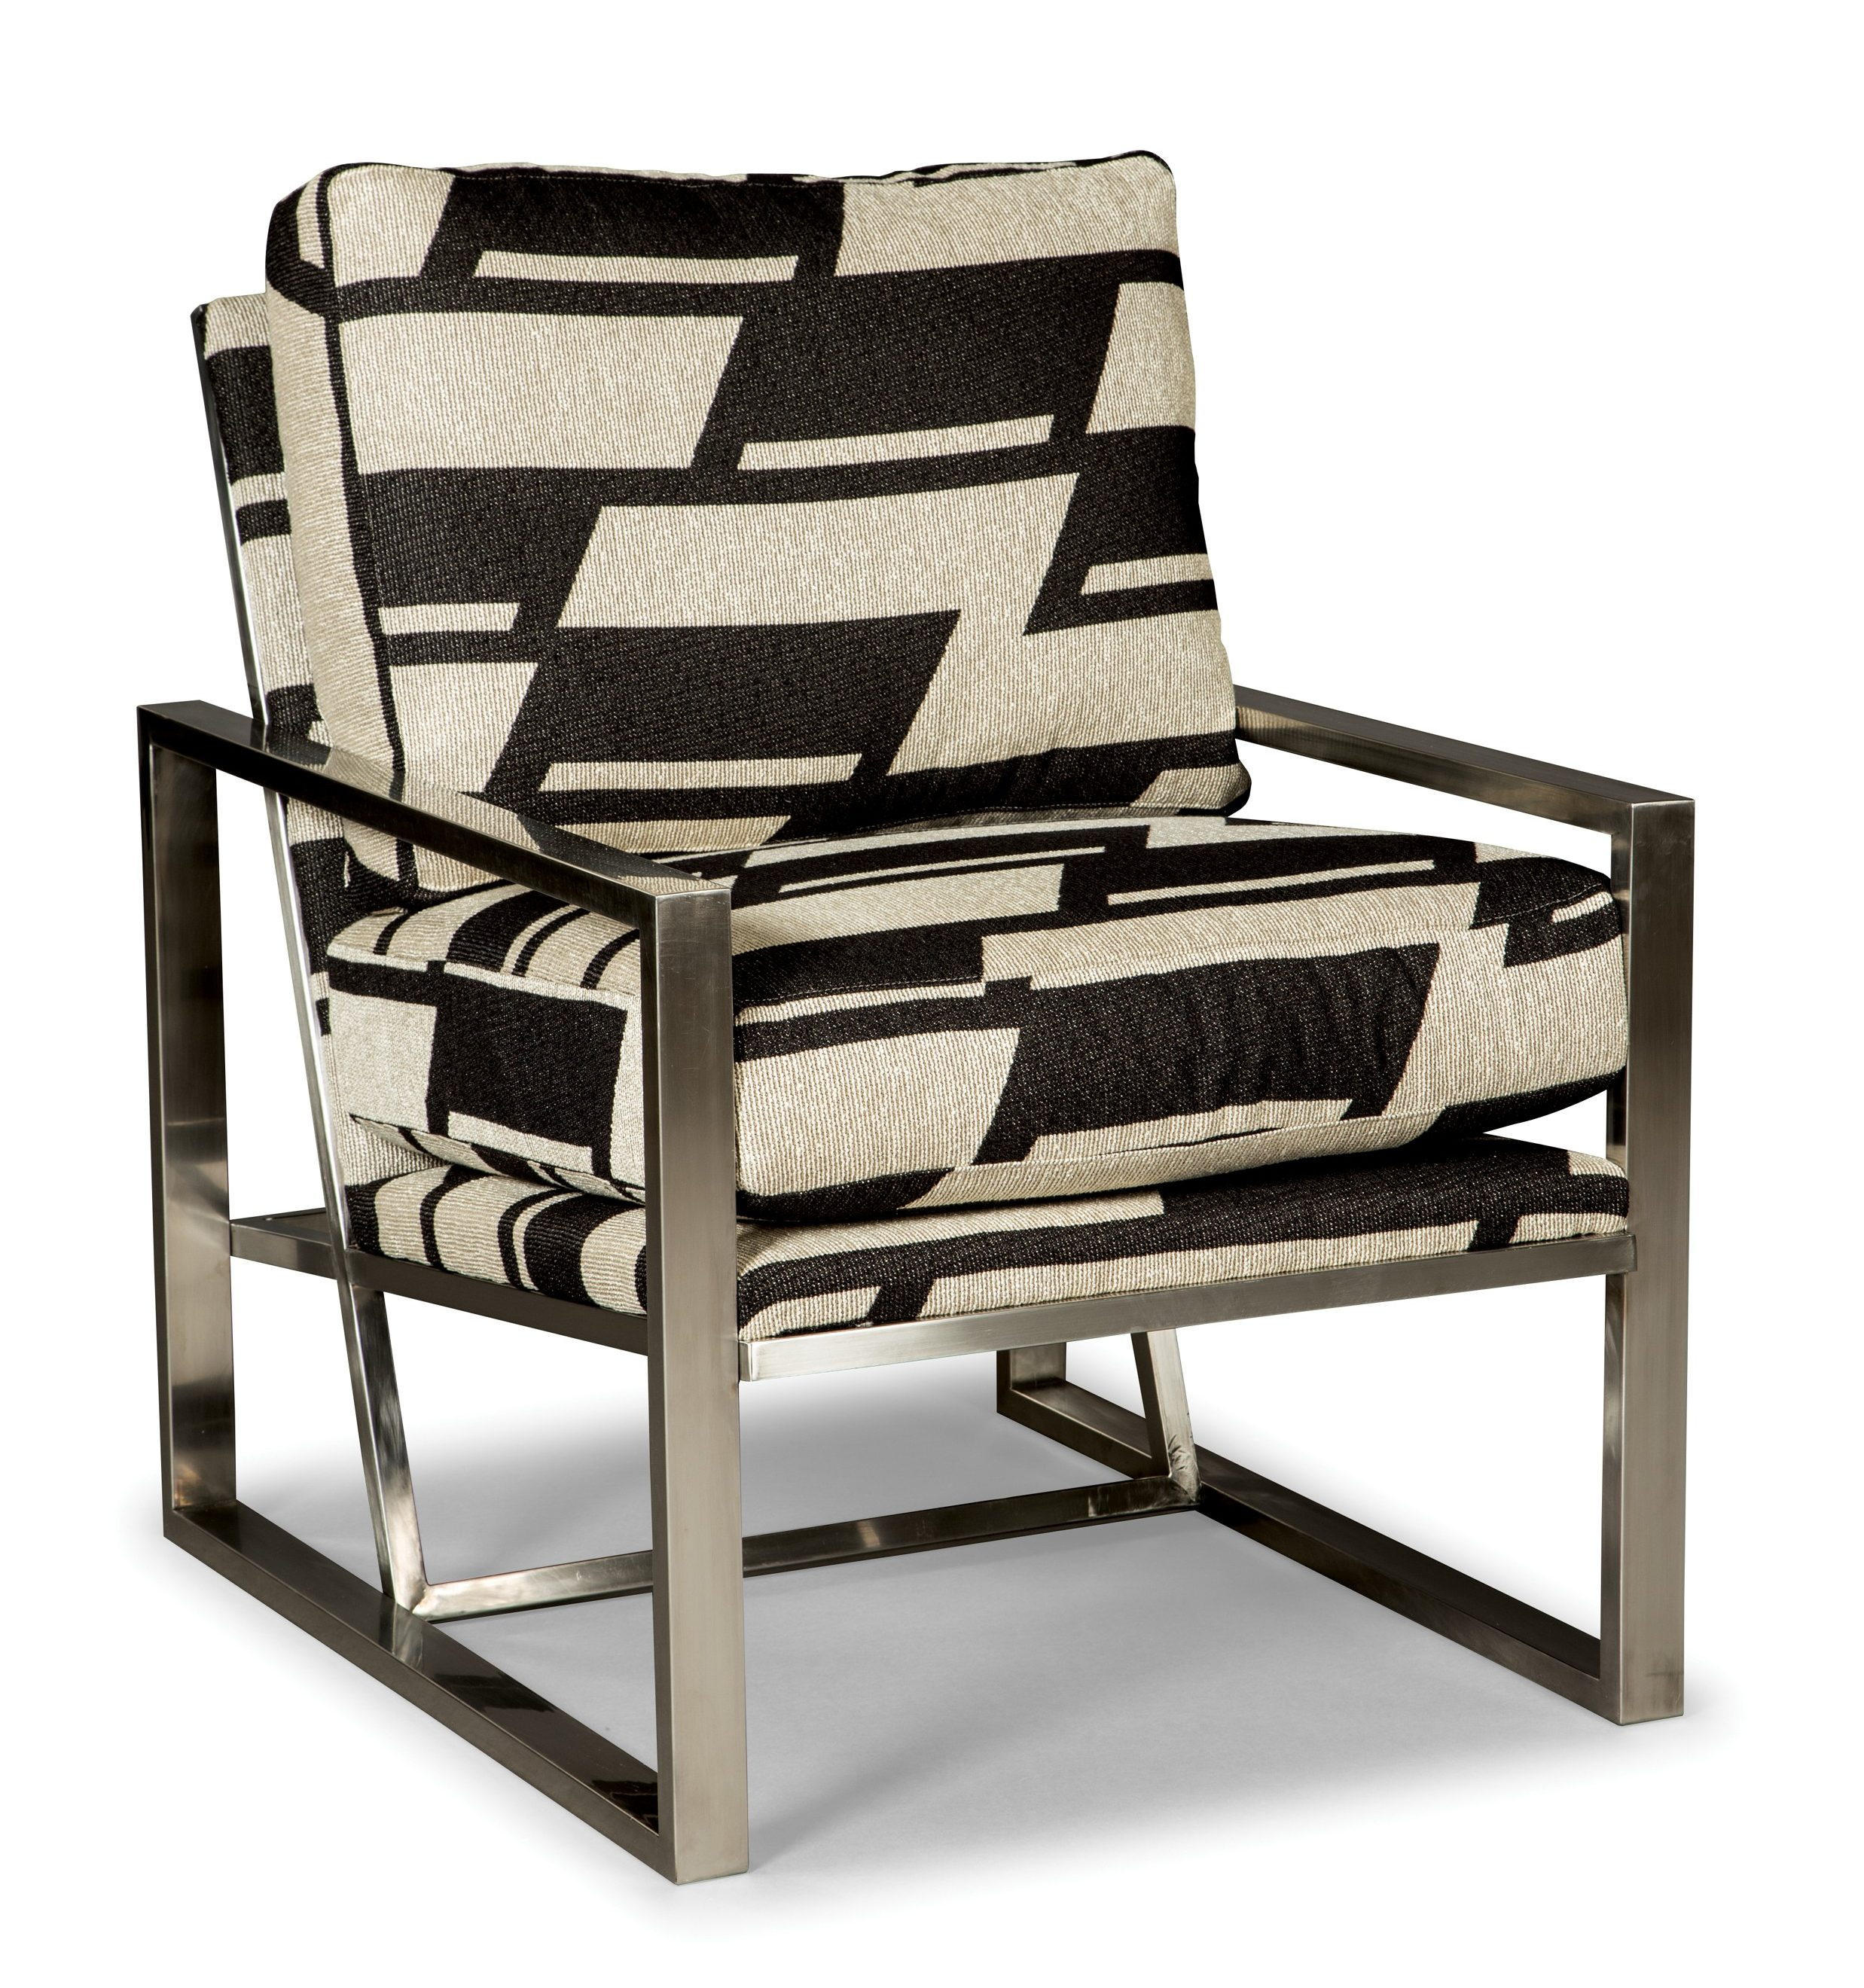 Rachael Ray Home The Upholstered Pieces Design By Gahs